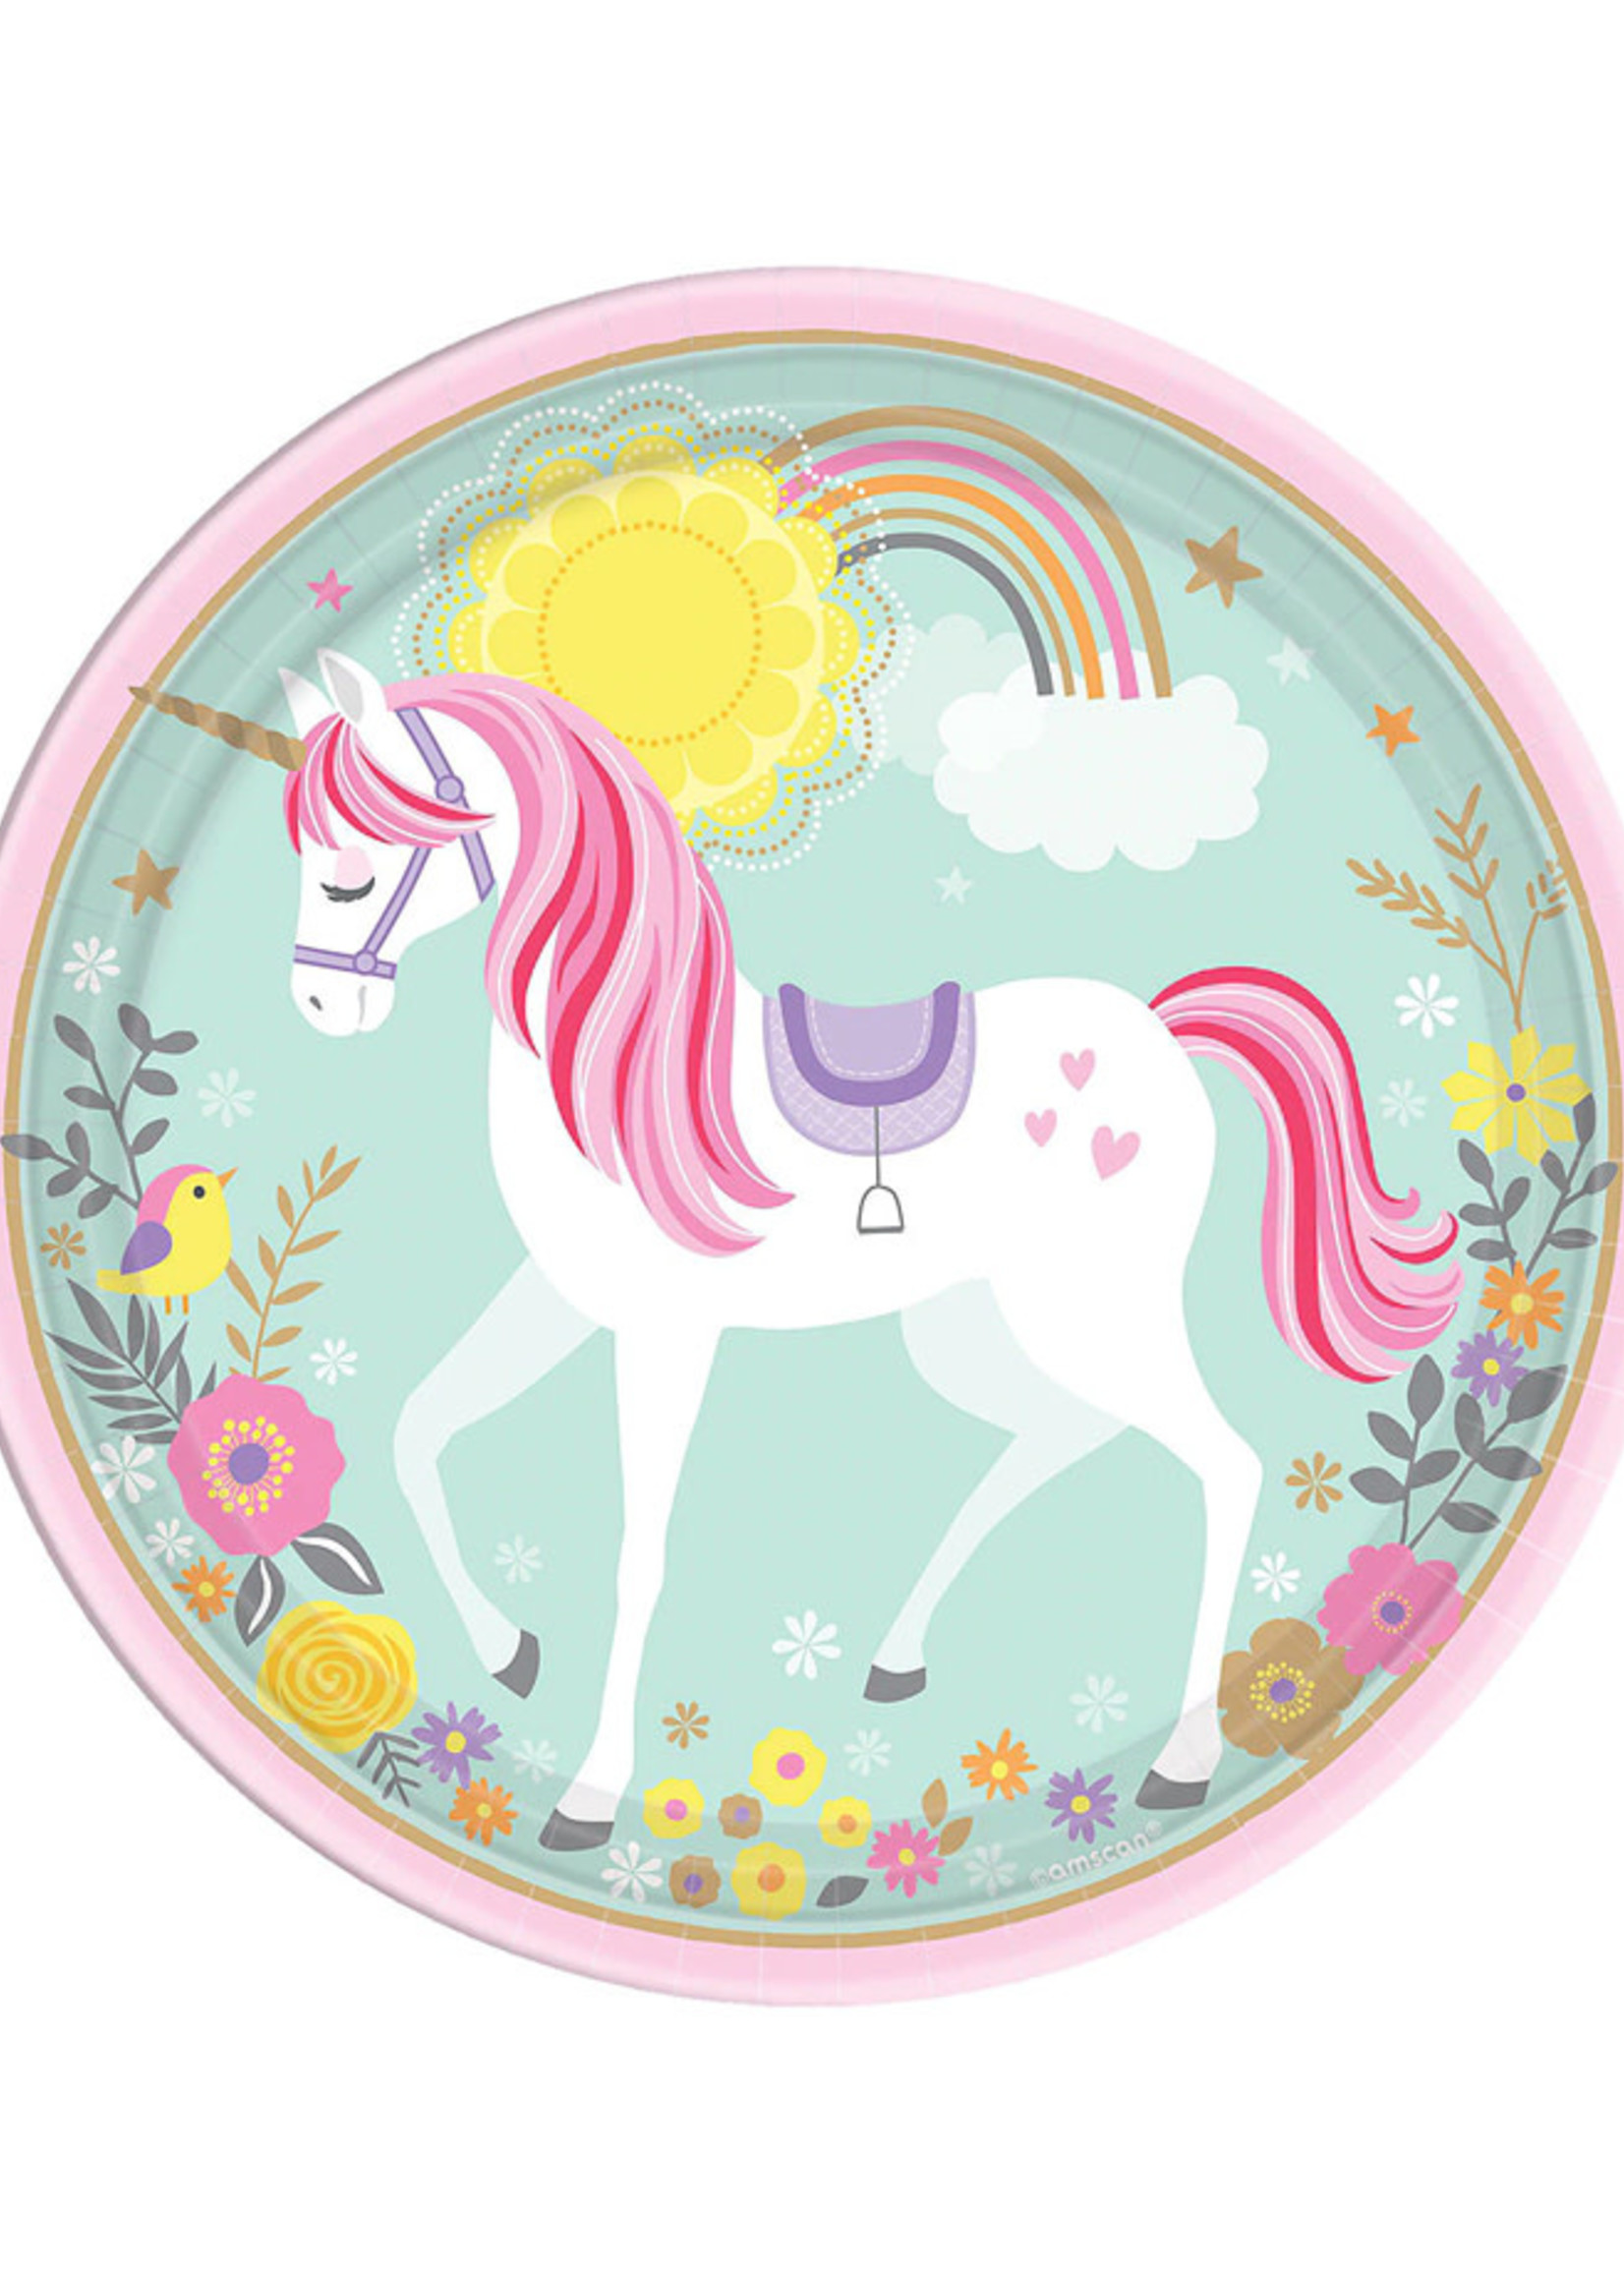 "Magical Unicorn 9"" Lunch Plates - 8ct"